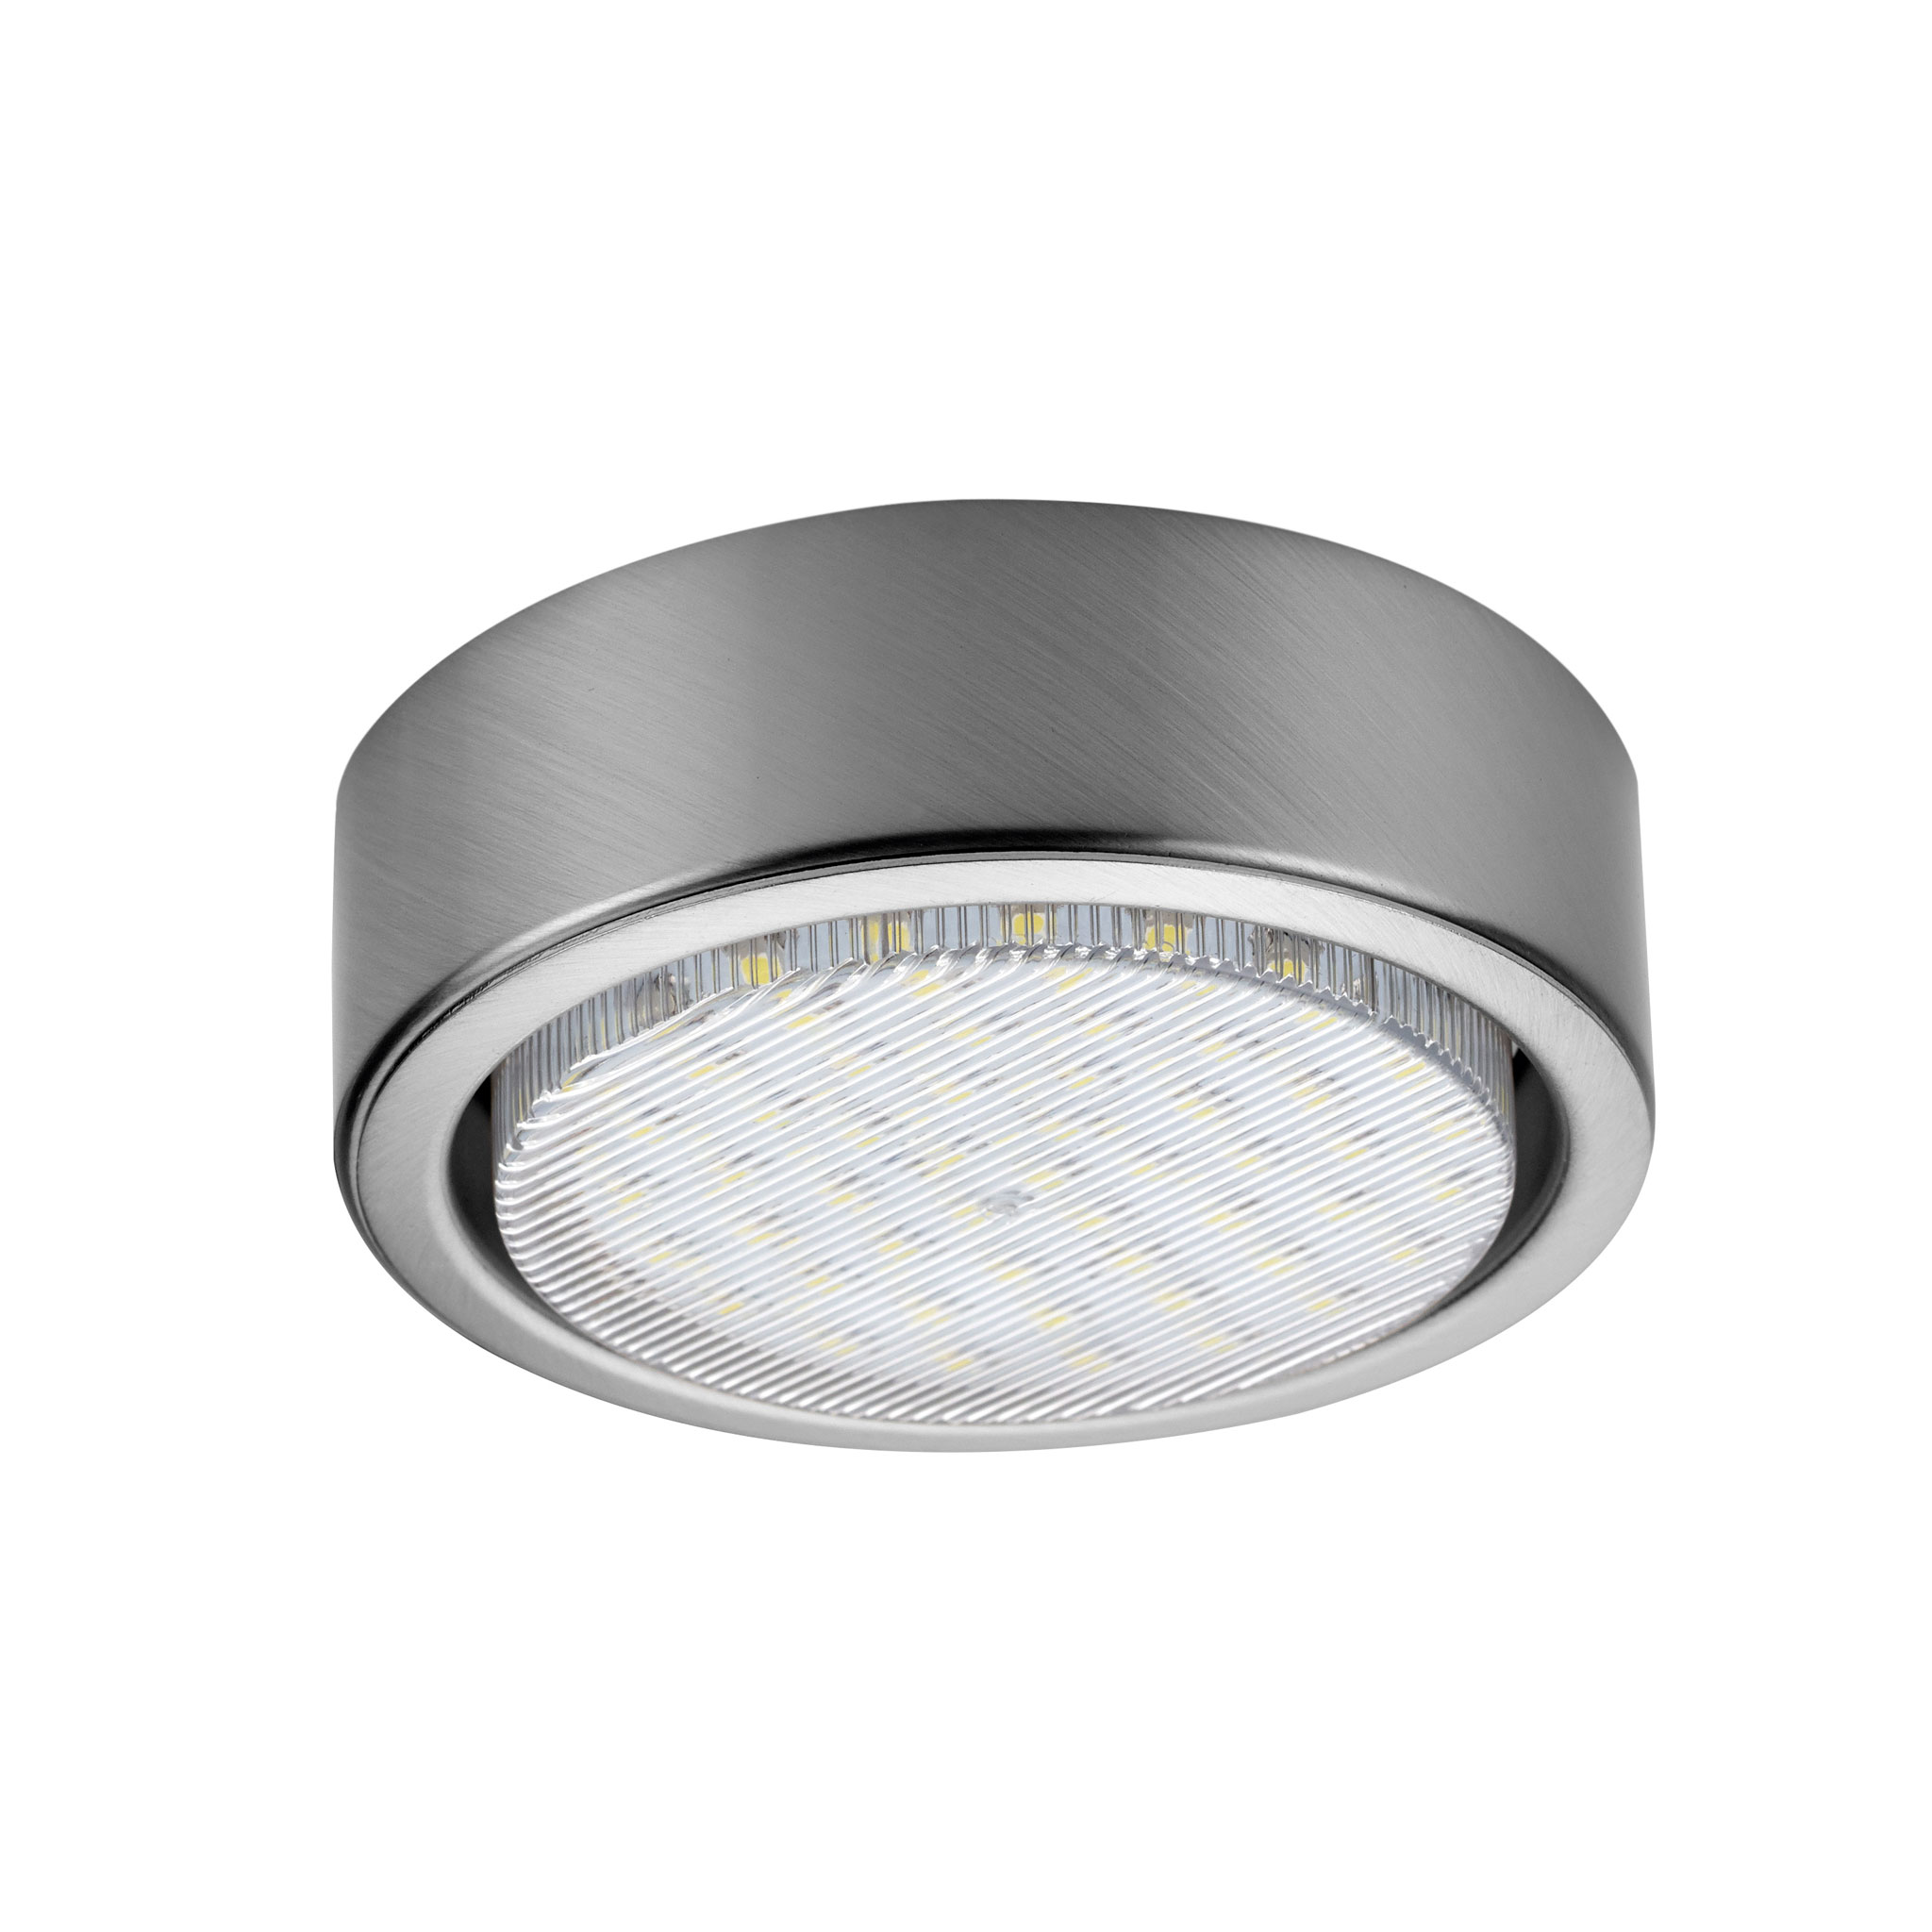 Sensio GX53 Circa LED Surface Light.